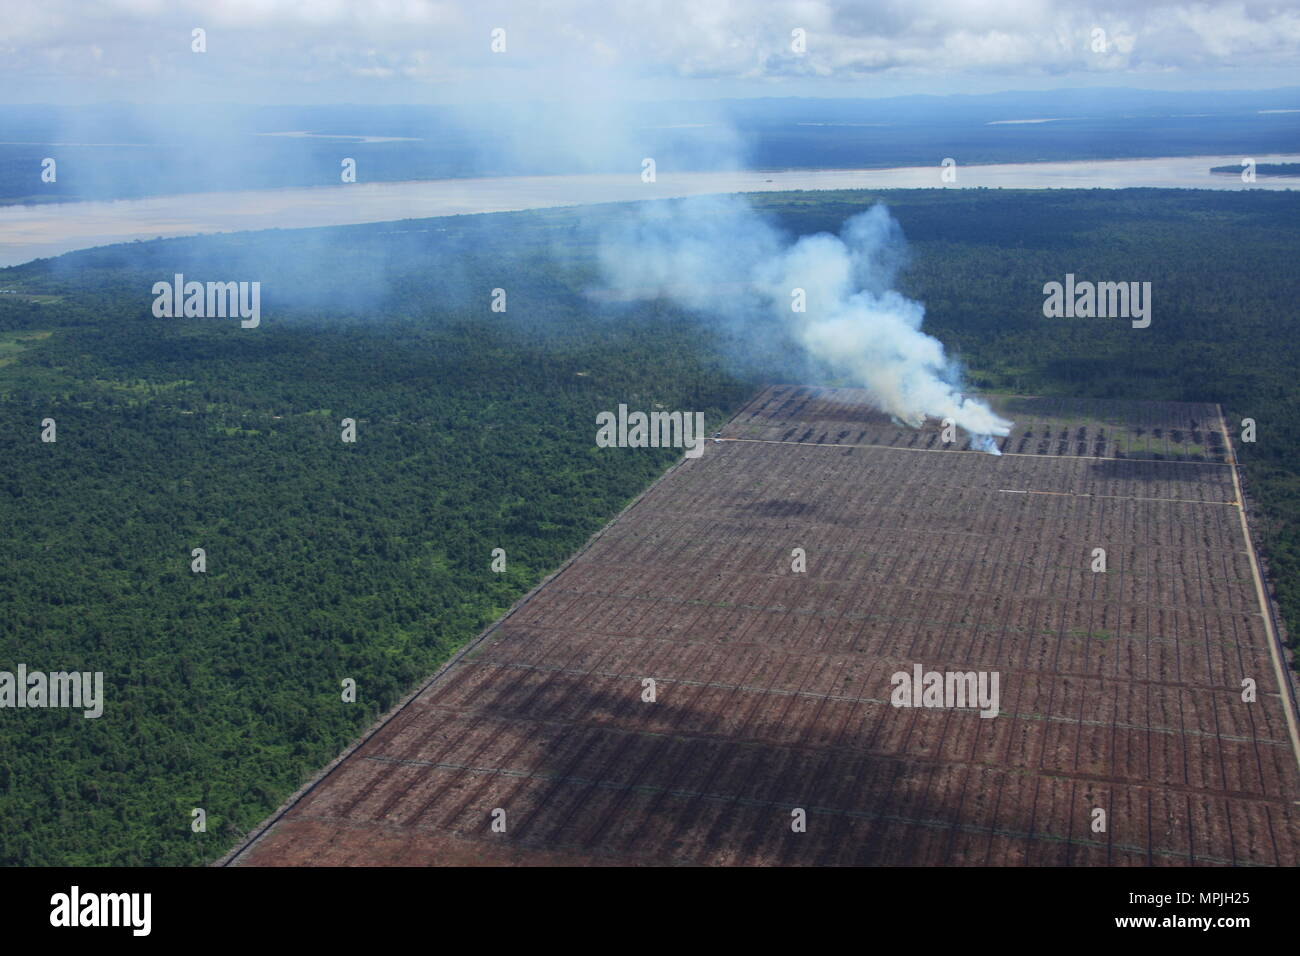 Aerial shots of Sarawak - human impact on the rainforest - deforestation for crops - Stock Image